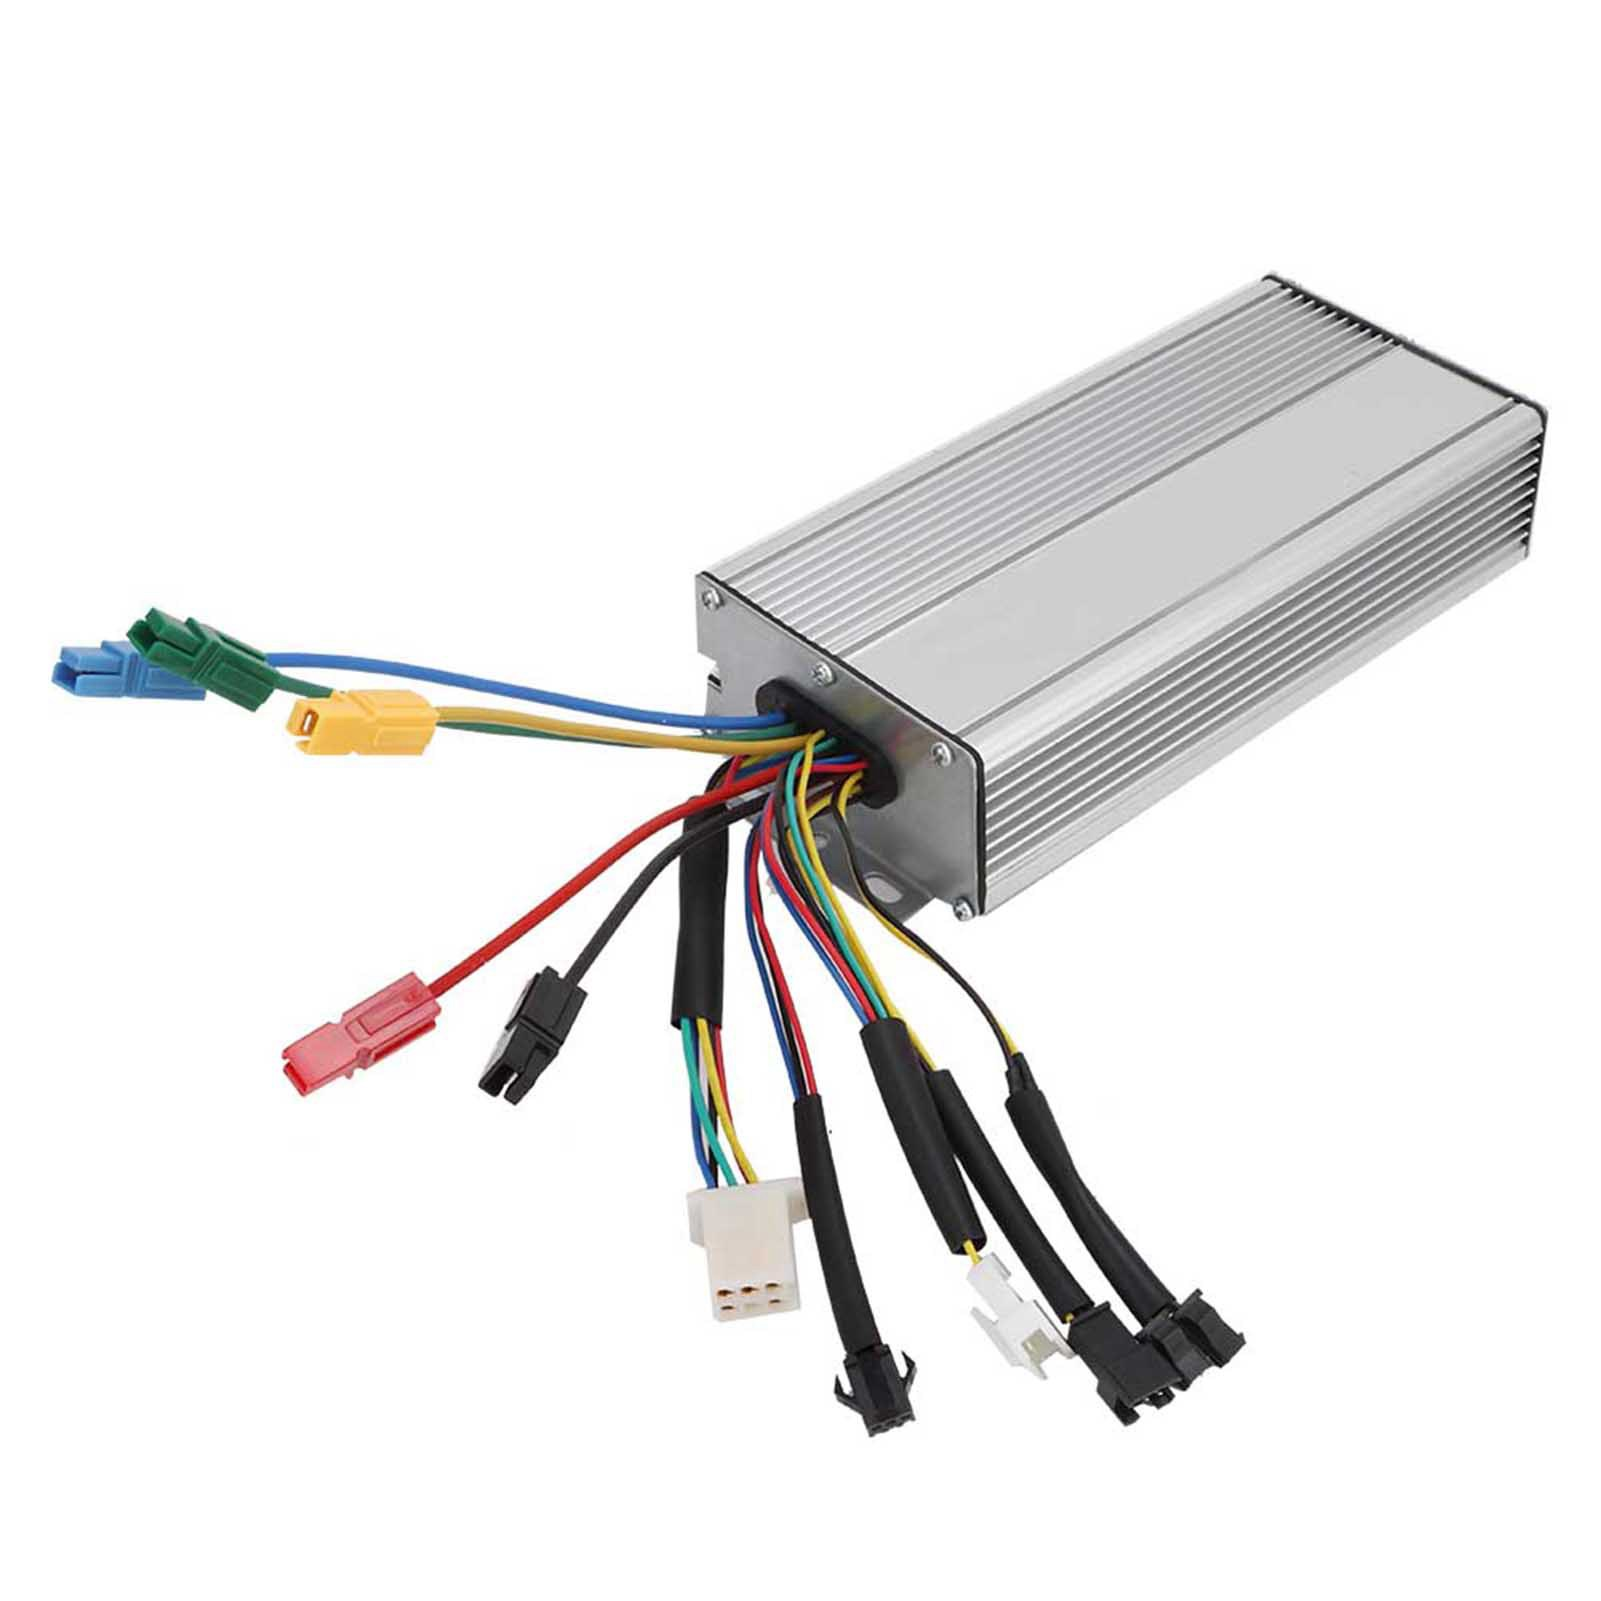 24V-36V-48V-Electric-Bicycle-Bike-Scooter-Brushless-Motor-Speed-Controller-Kit thumbnail 29